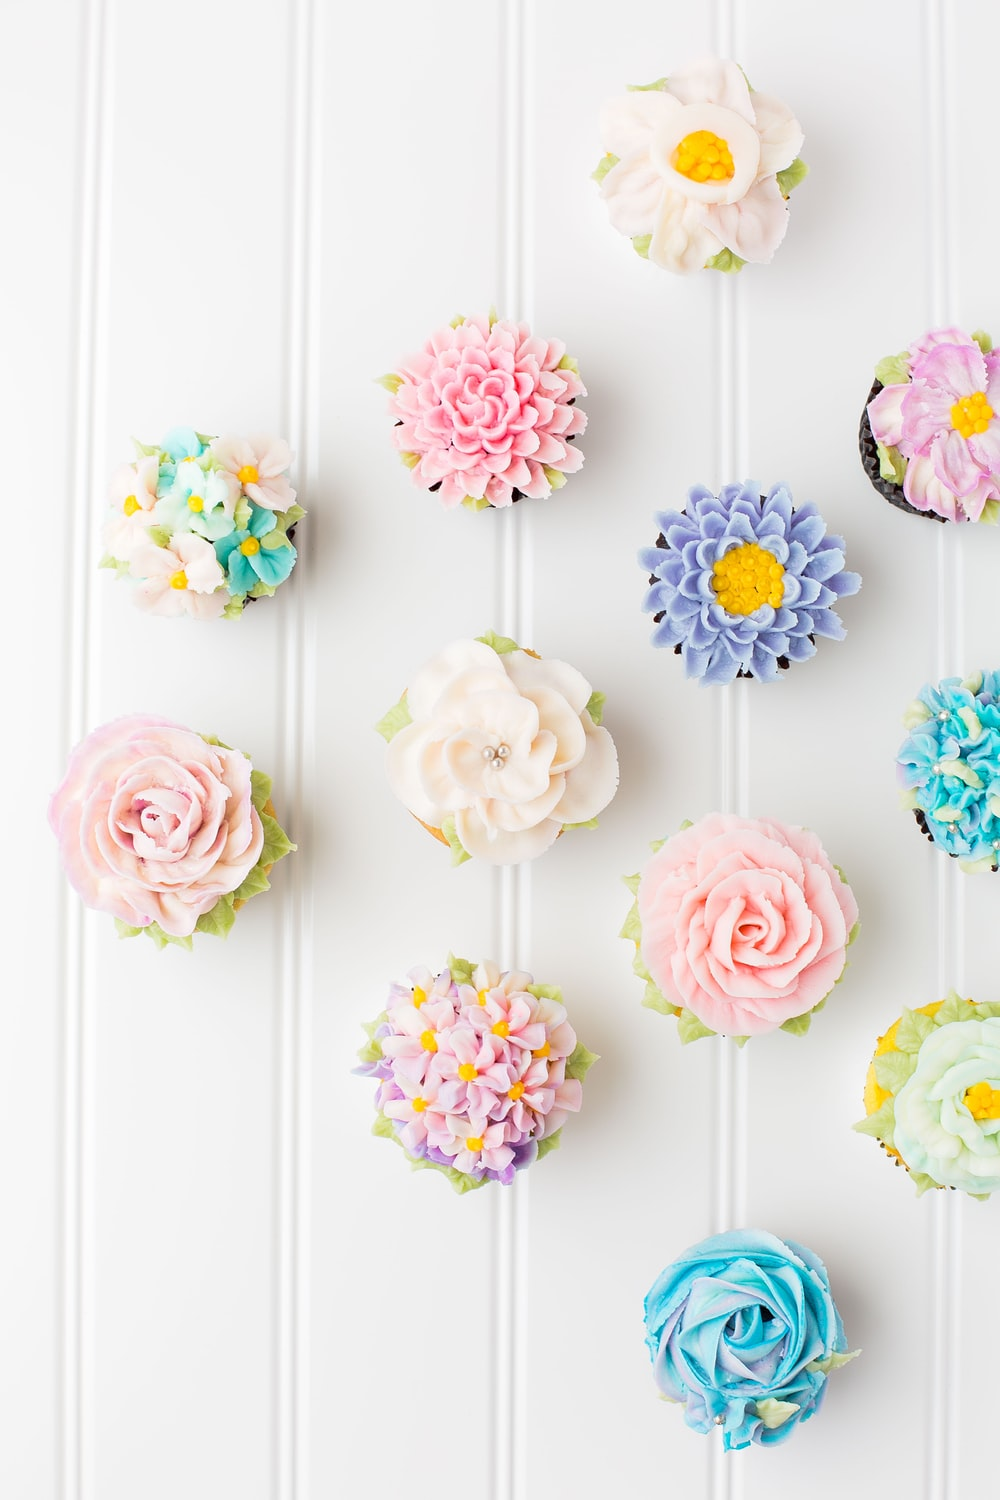 27 cupcake pictures download free images on unsplash flower cupcakes on white surface izmirmasajfo